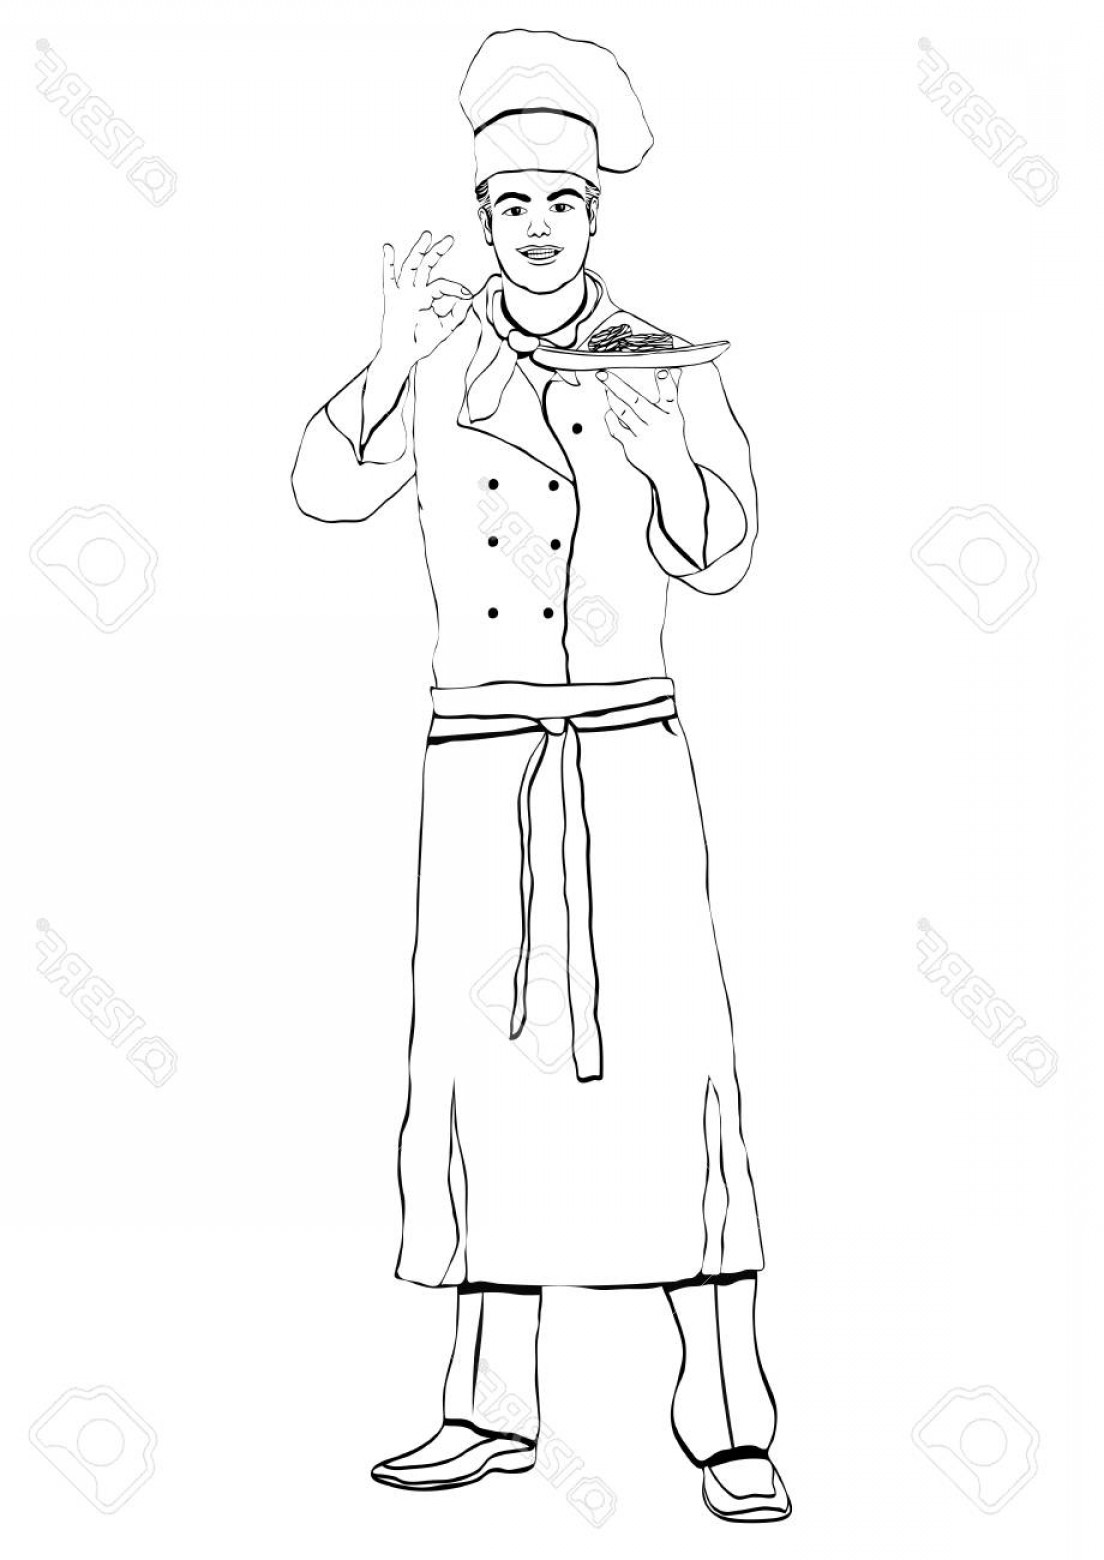 Handsome Man Vector Outline: Photostock Vector Cook Standing Front Side Coloring Vector Outline Portrait Male Chef Full Length Black And White Pain